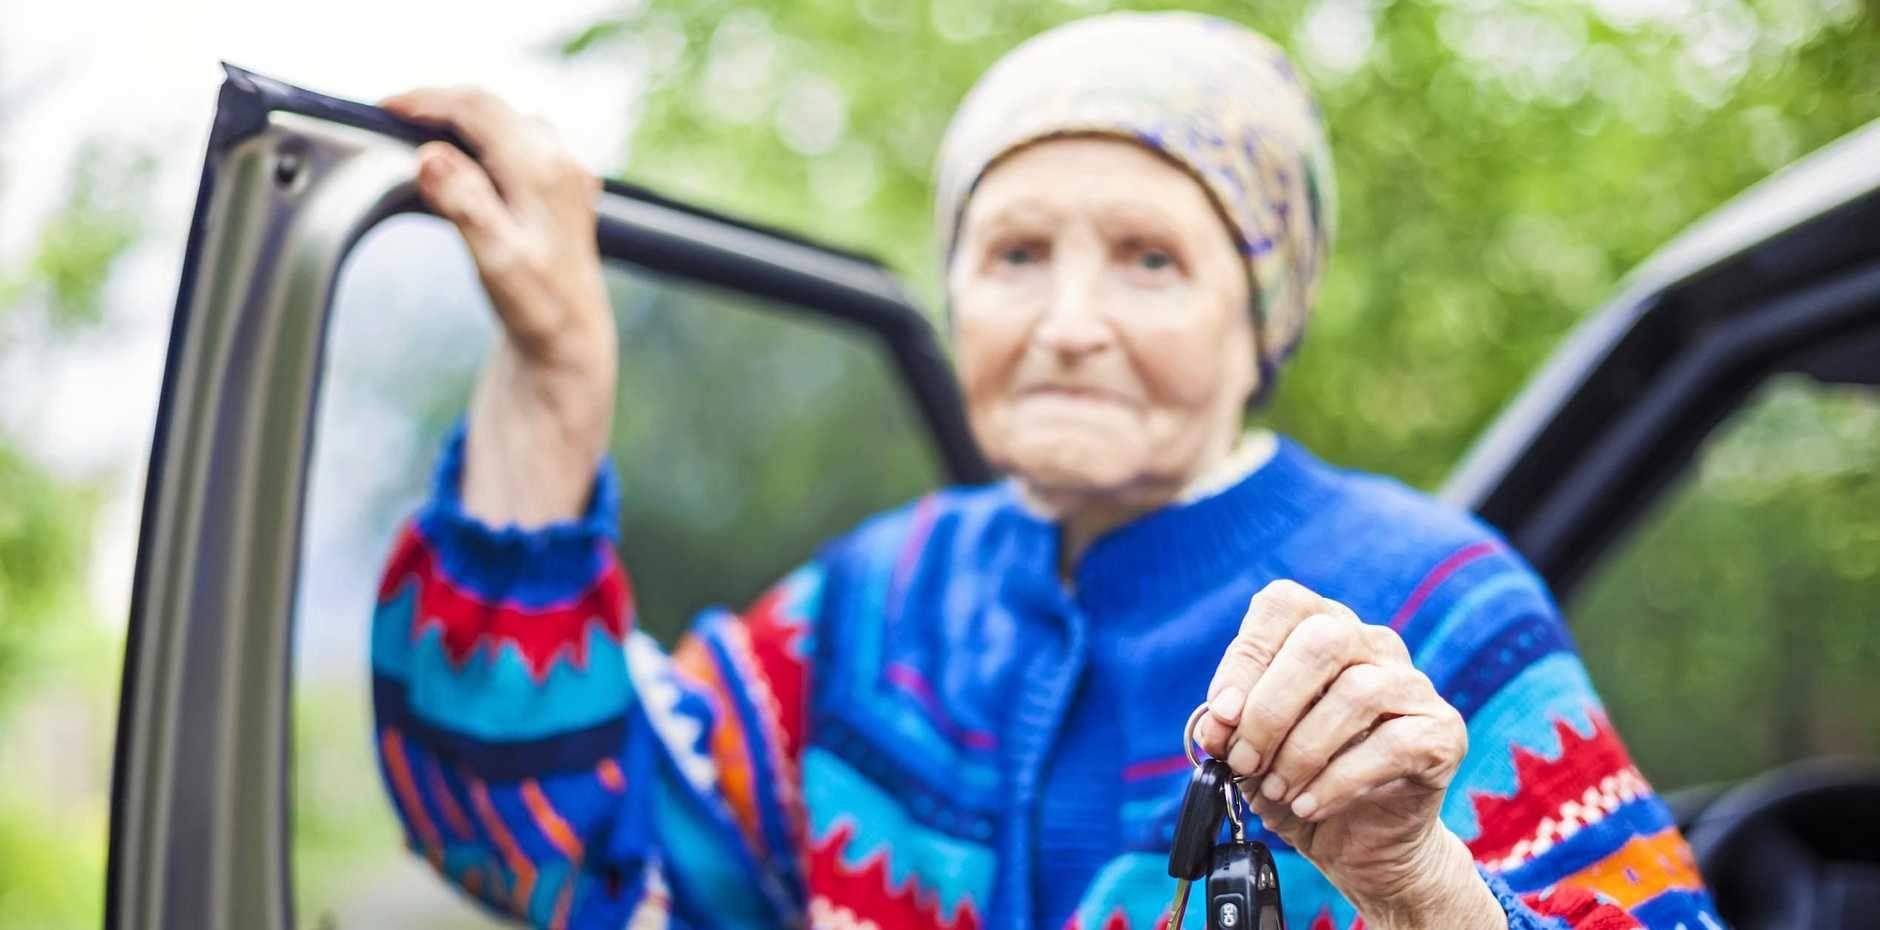 LOCK UP: Thieves have discovered retirement villages are a fertile ground for finding unlocked cars, garage openers and keys in plain view.